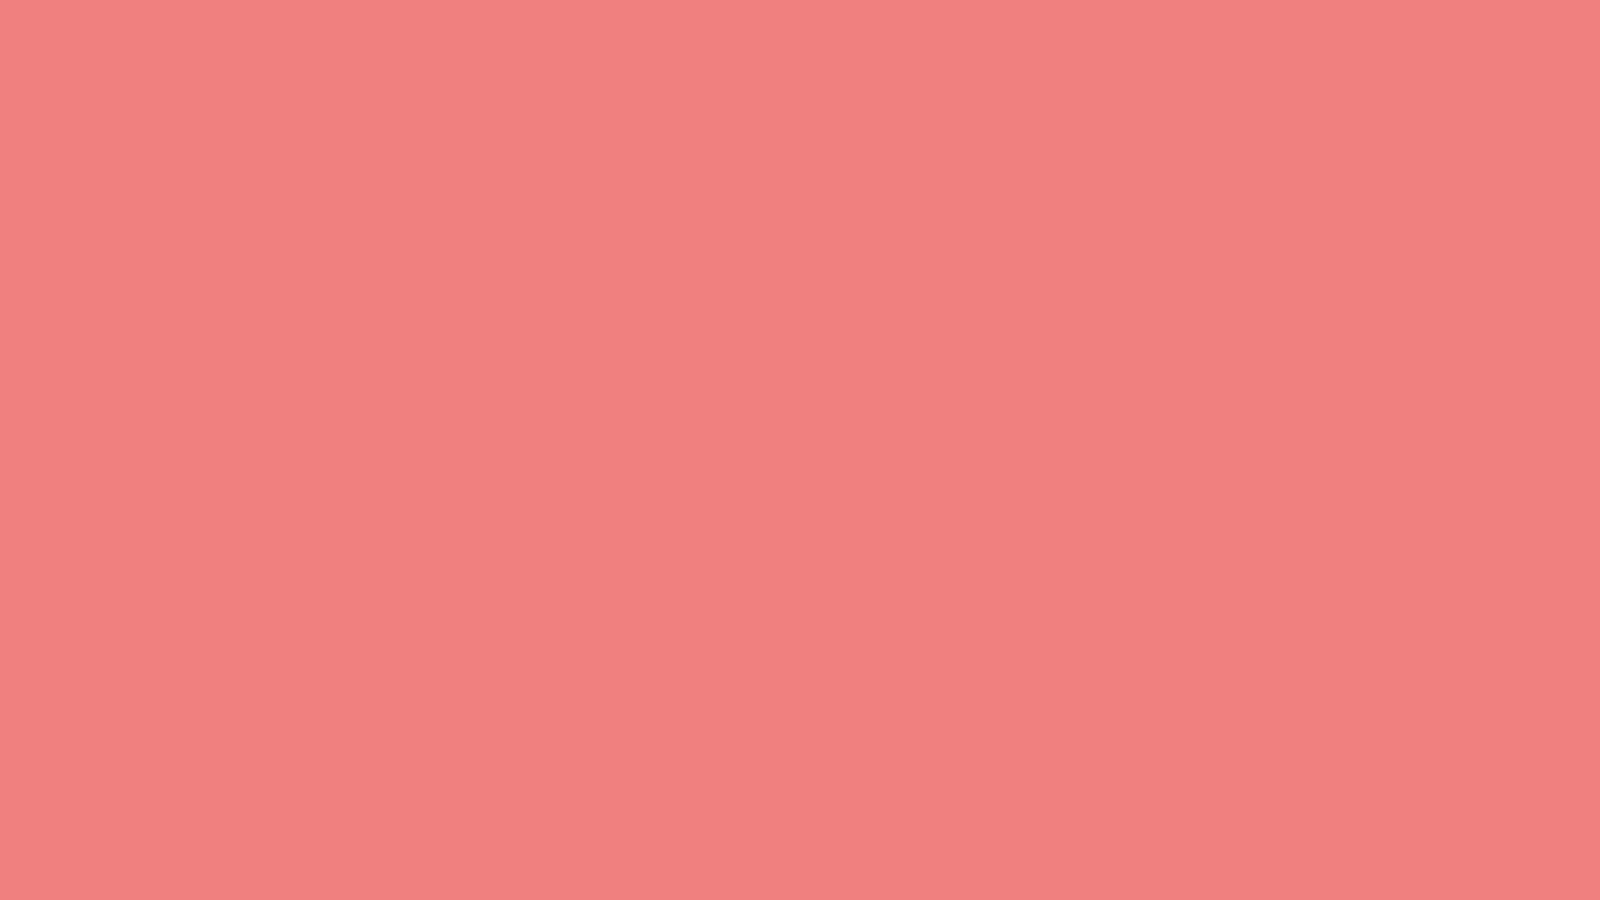 1600x900 Light Coral Solid Color Background